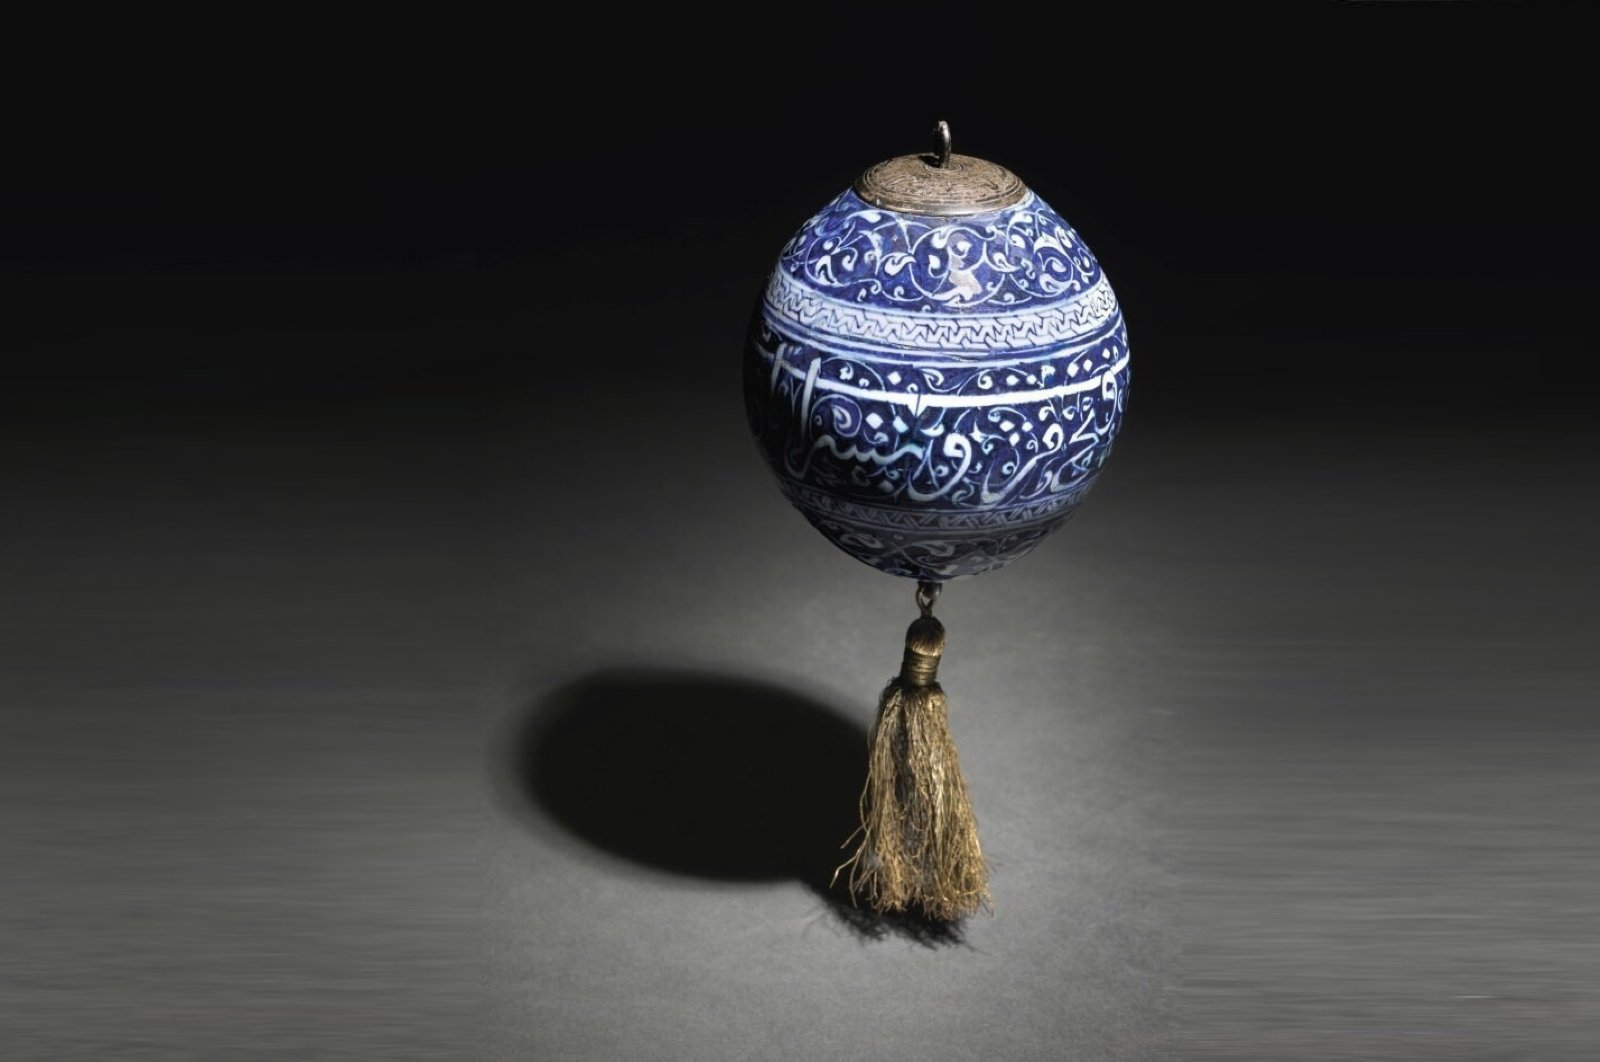 The body of the hanging ornament is decorated in underglaze cobalt blue with a calligraphic band against leafy scrolls and topped with a metal mount, while the bottom features a hoop and tassel. ( İHA PHOTO)